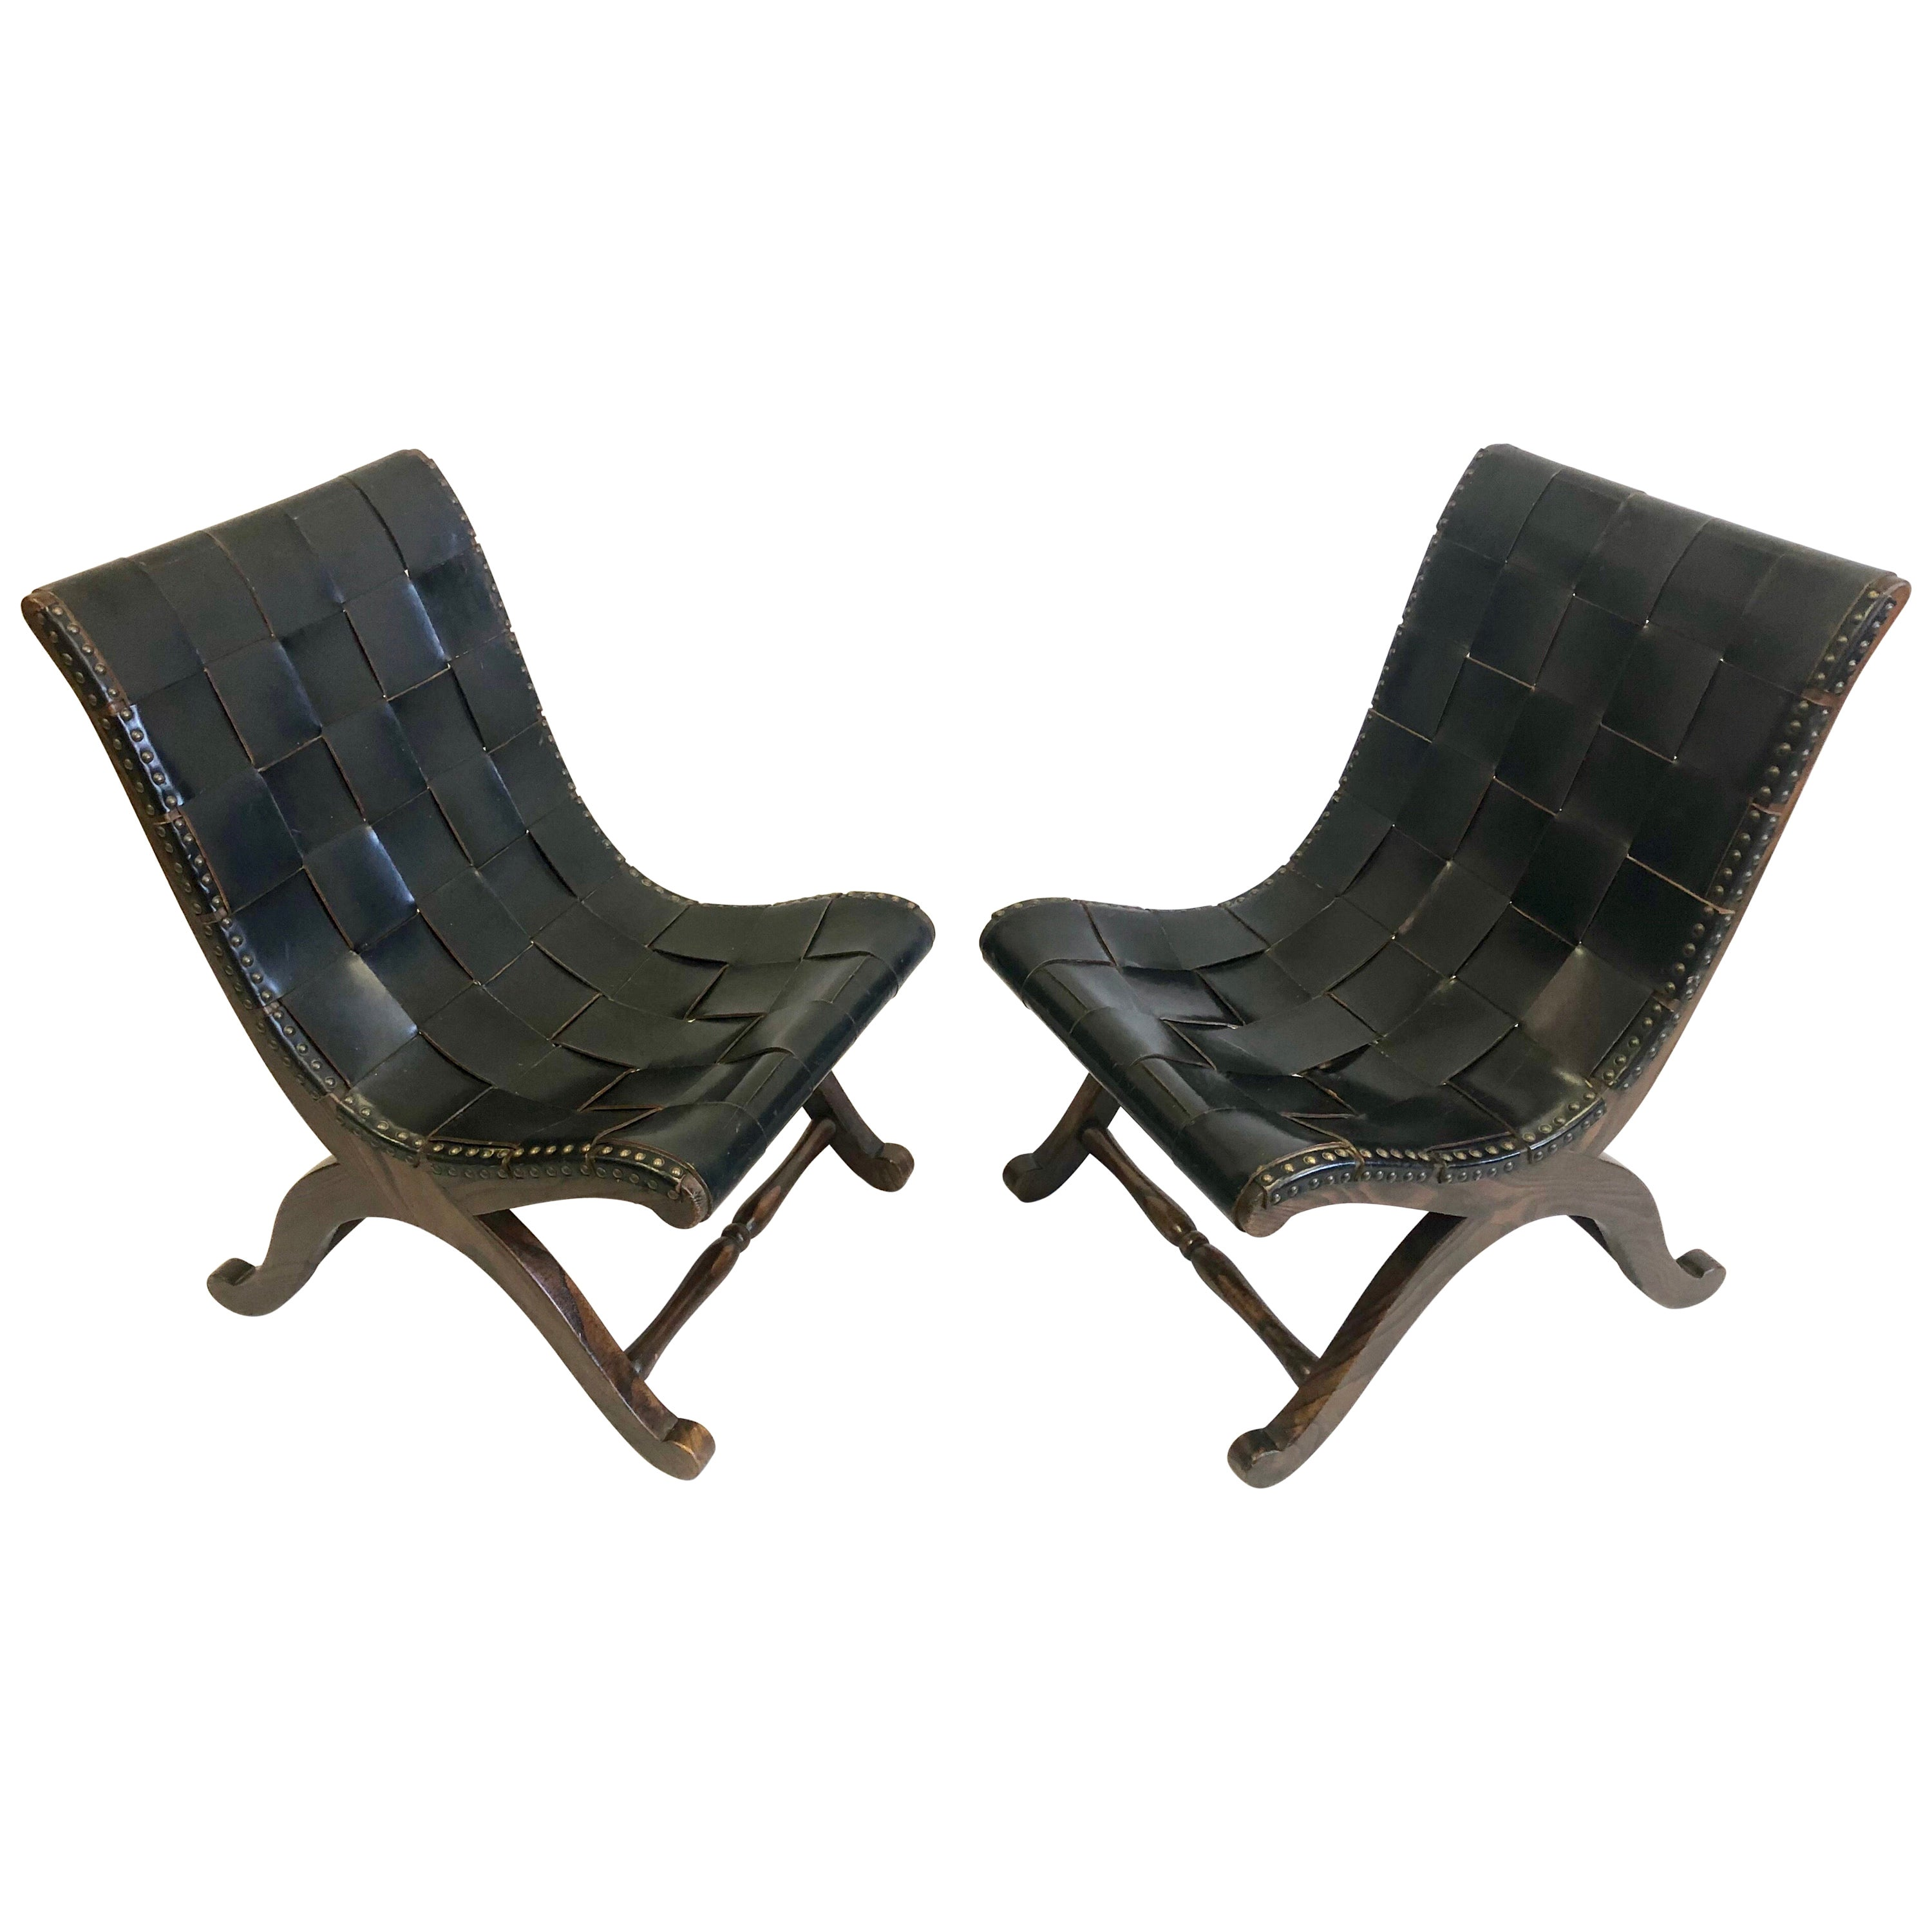 Pair of Modern Neoclassical Black Leather Strap Chairs Attributed Pierre Lottier